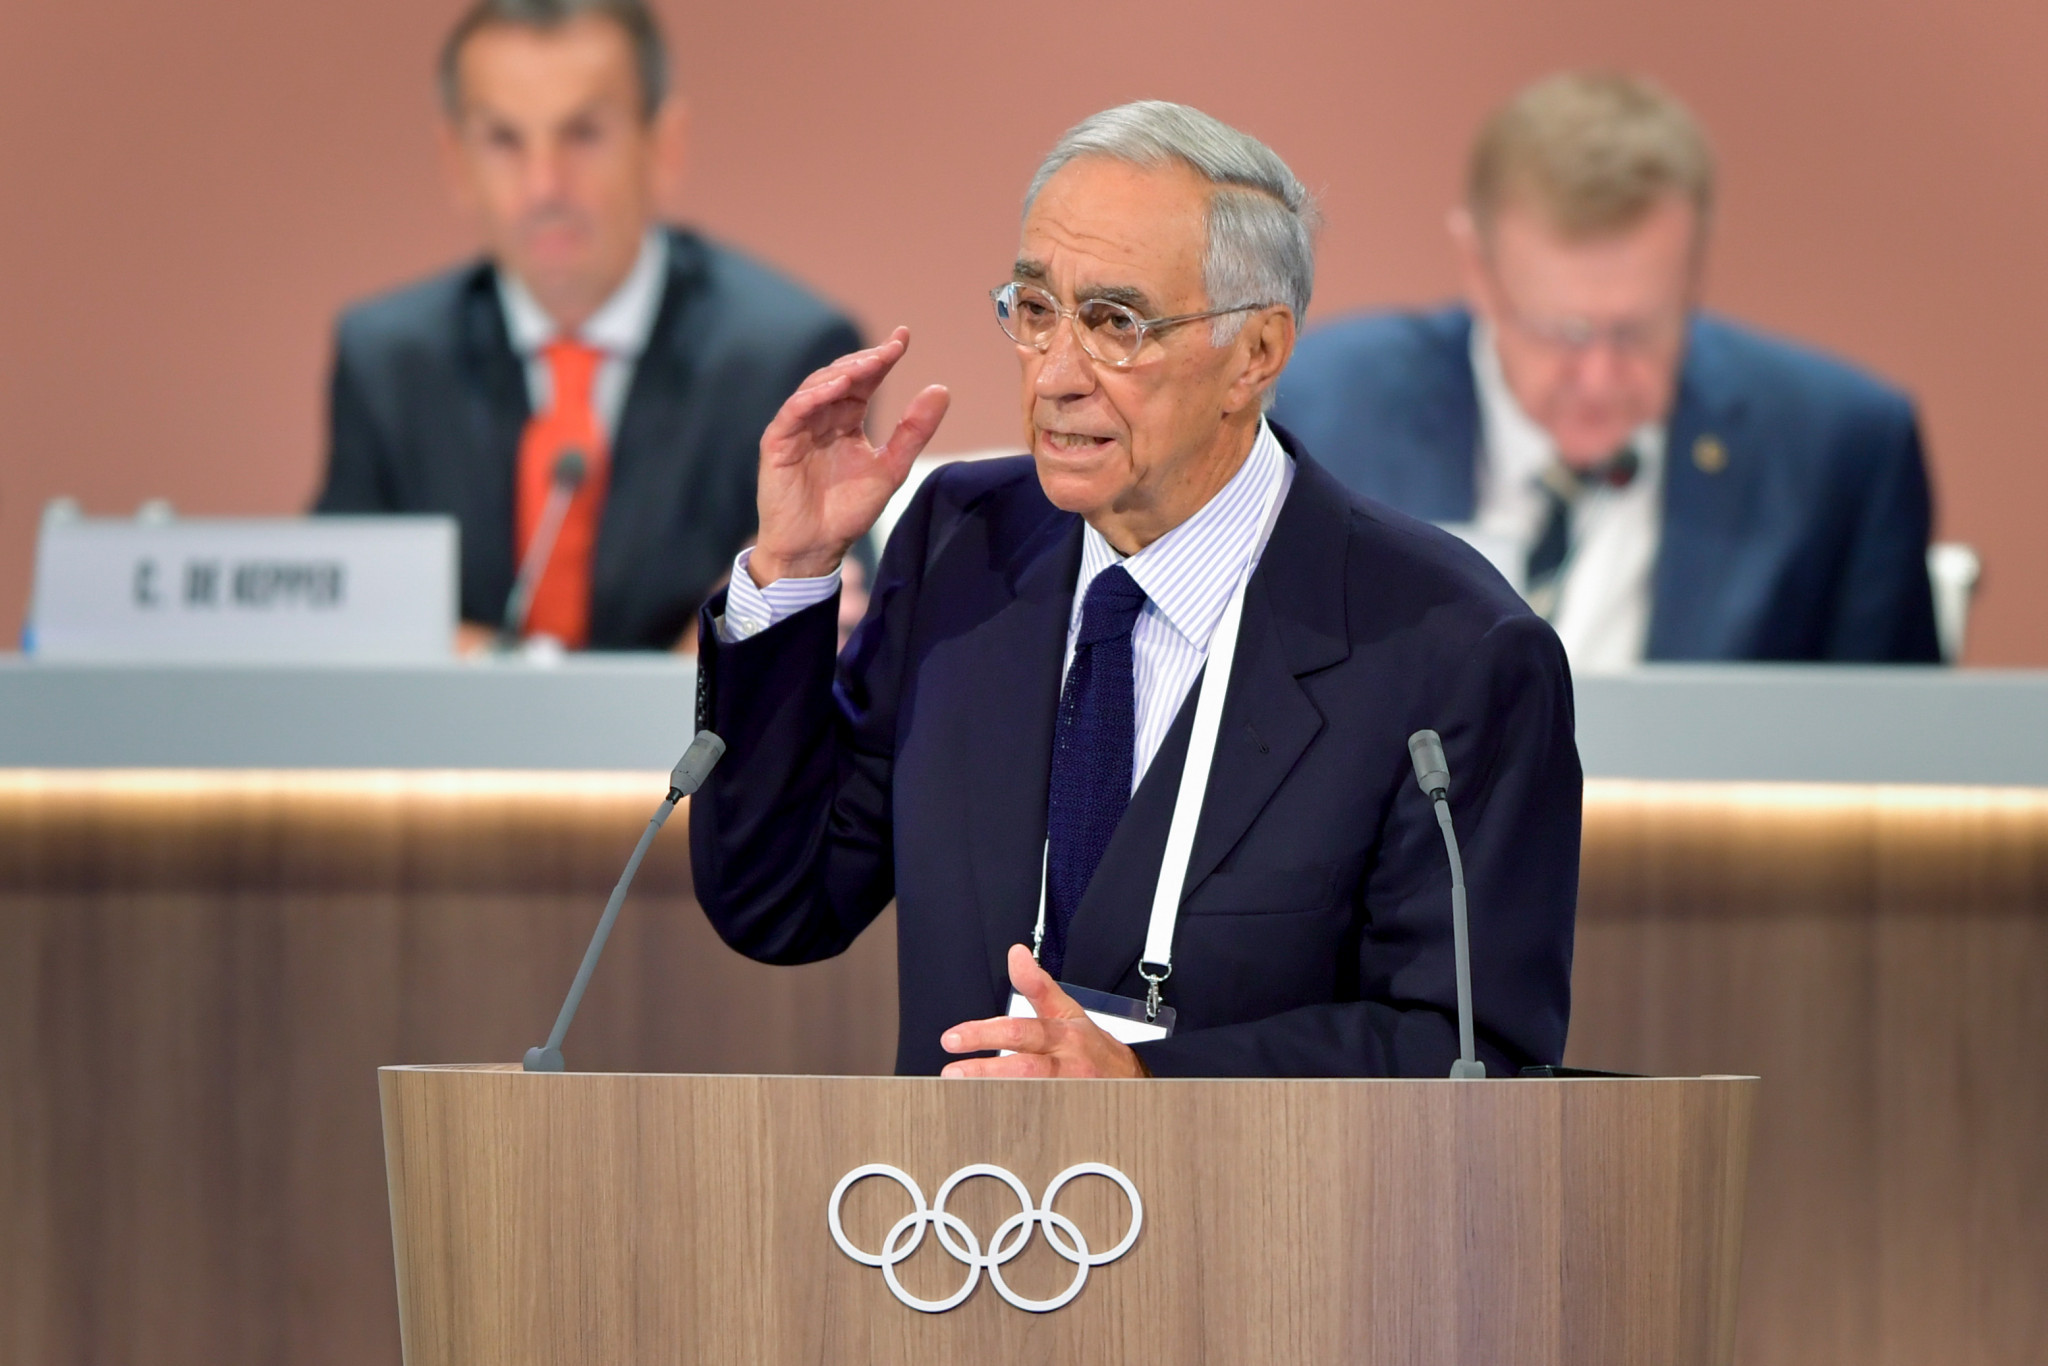 Franco Carraro is among the members to have left the IOC ©Getty Images